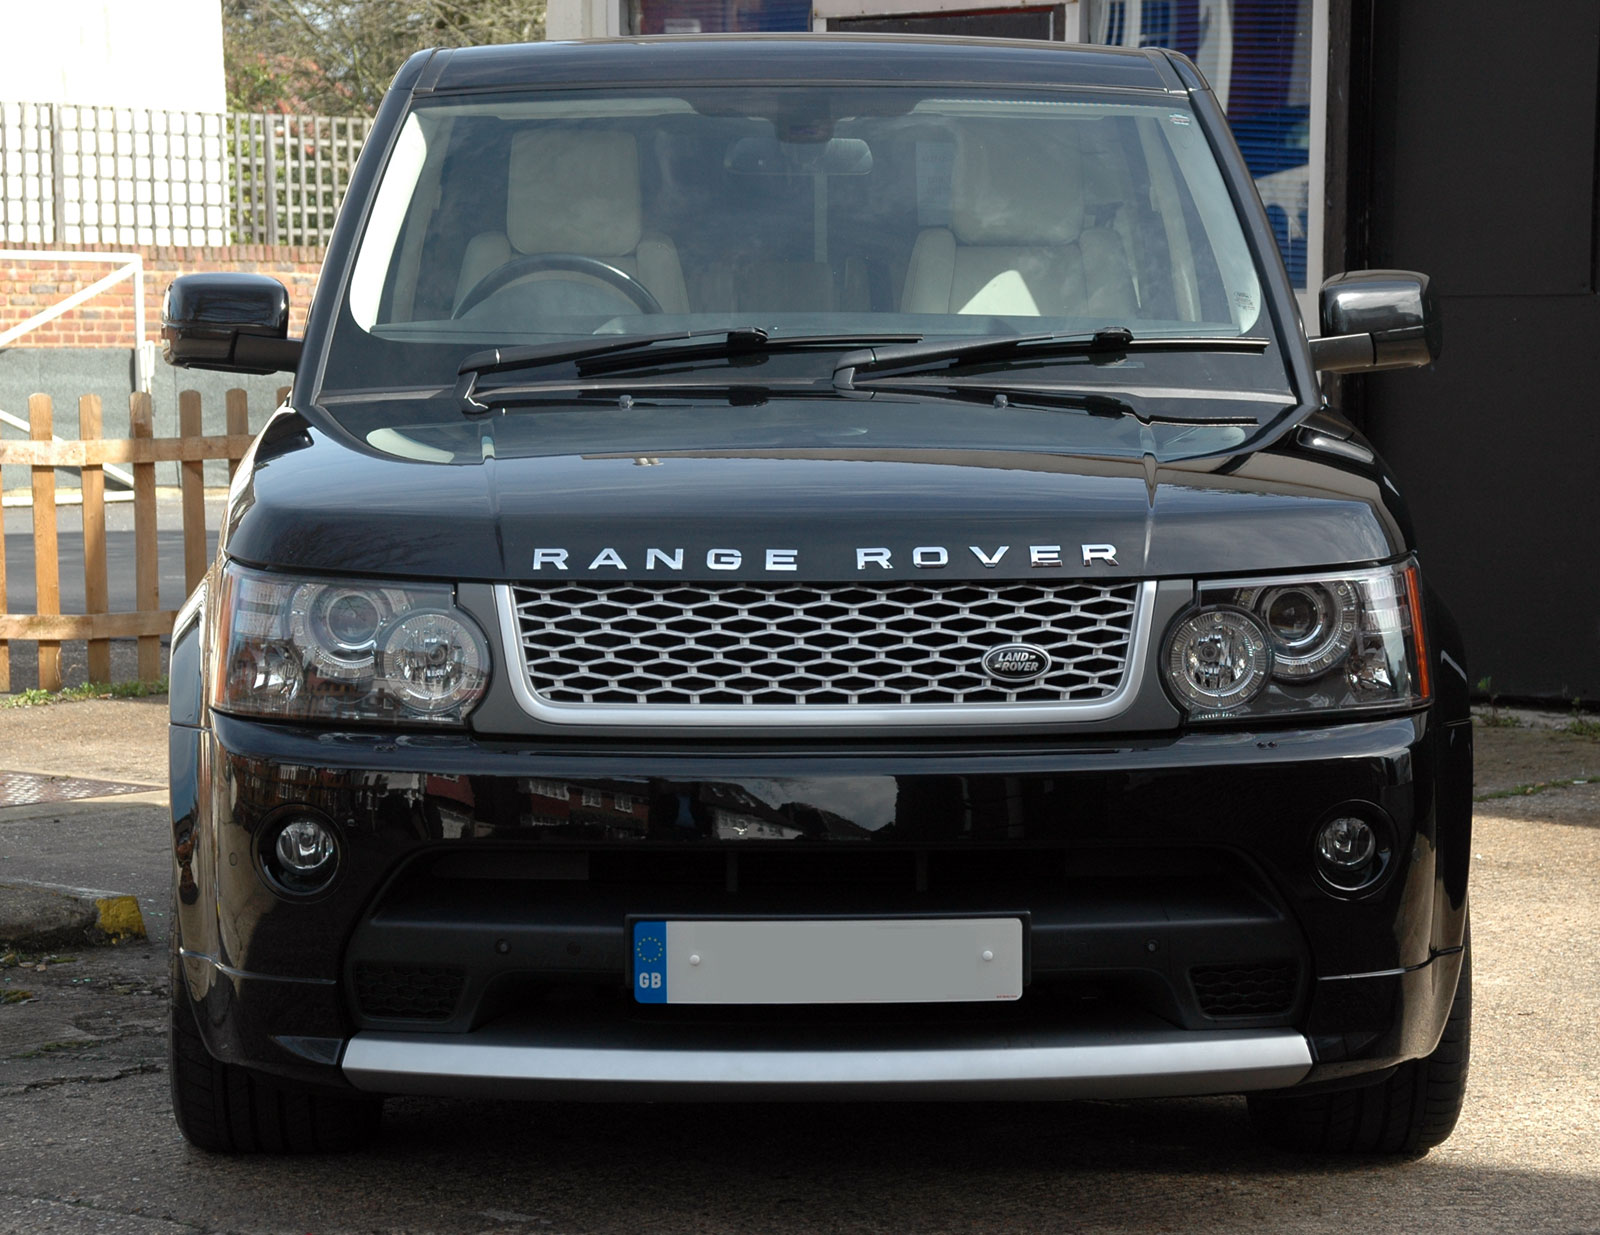 2013 Range Rover Sport Autobiography Conversion Kit for the 2005 model Sport